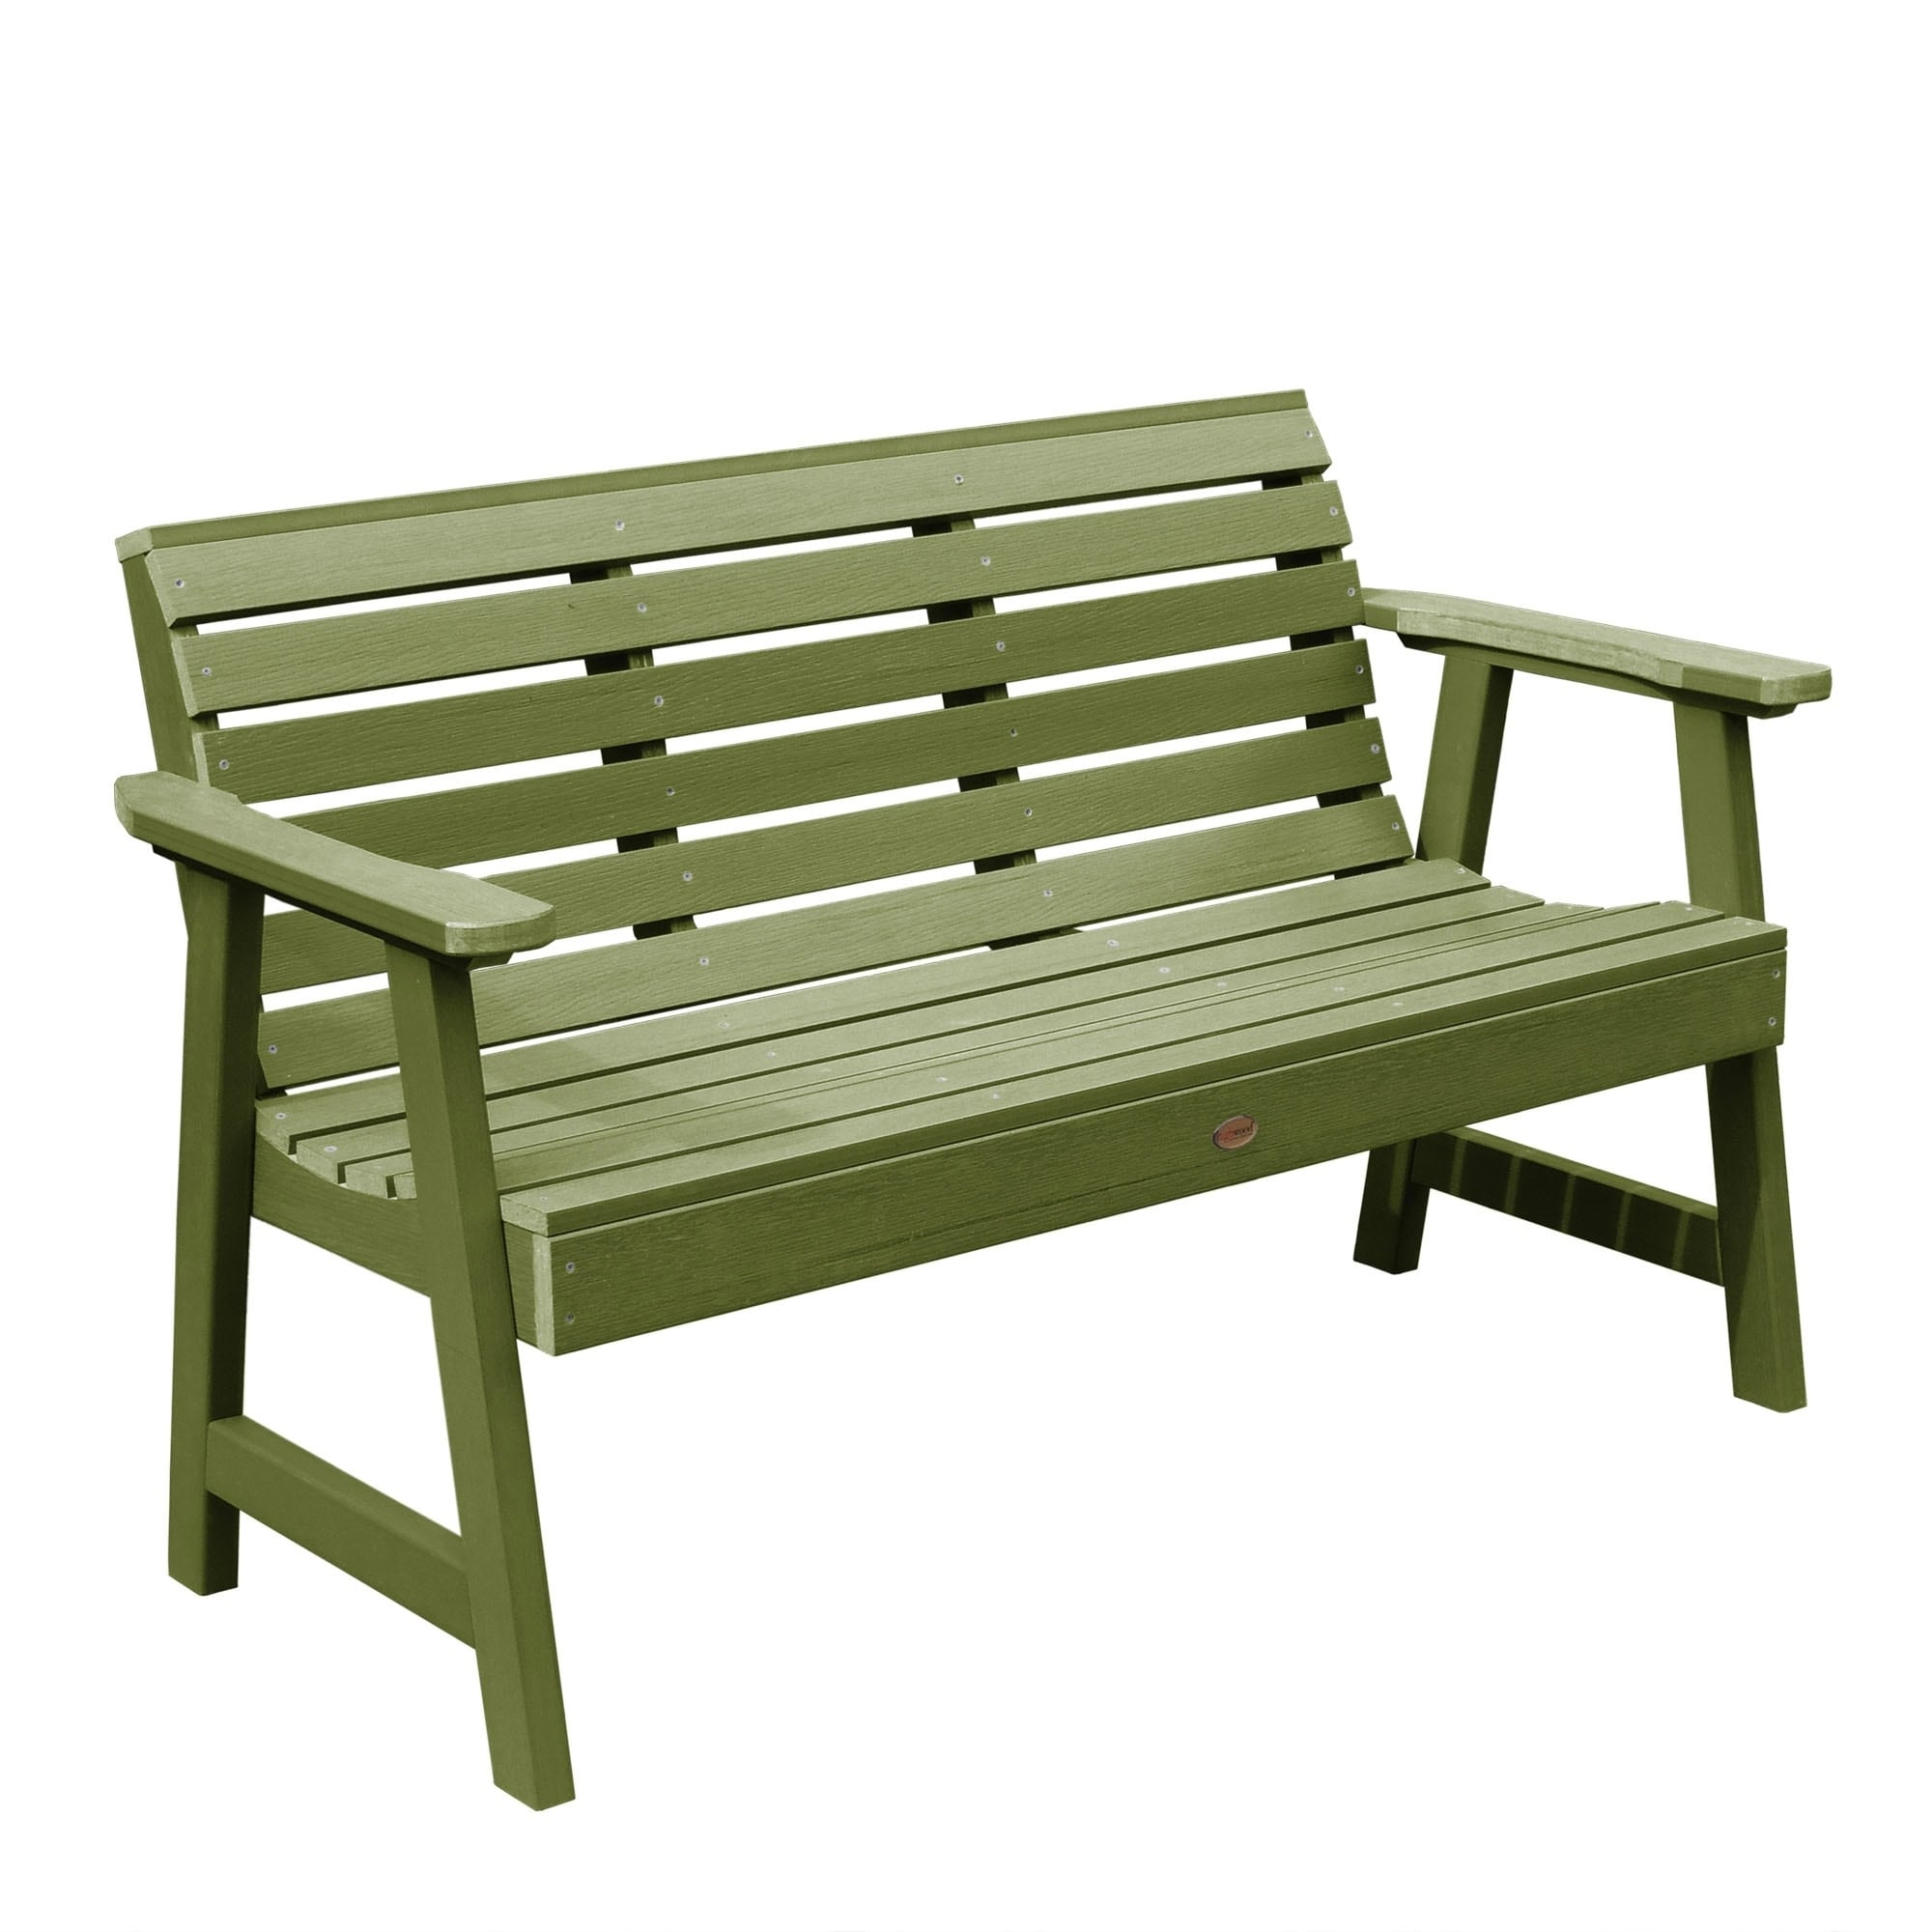 Highwood Weatherly Eco Friendly 4 Foot Garden Bench   Free Shipping Today    Overstock.com   17220959